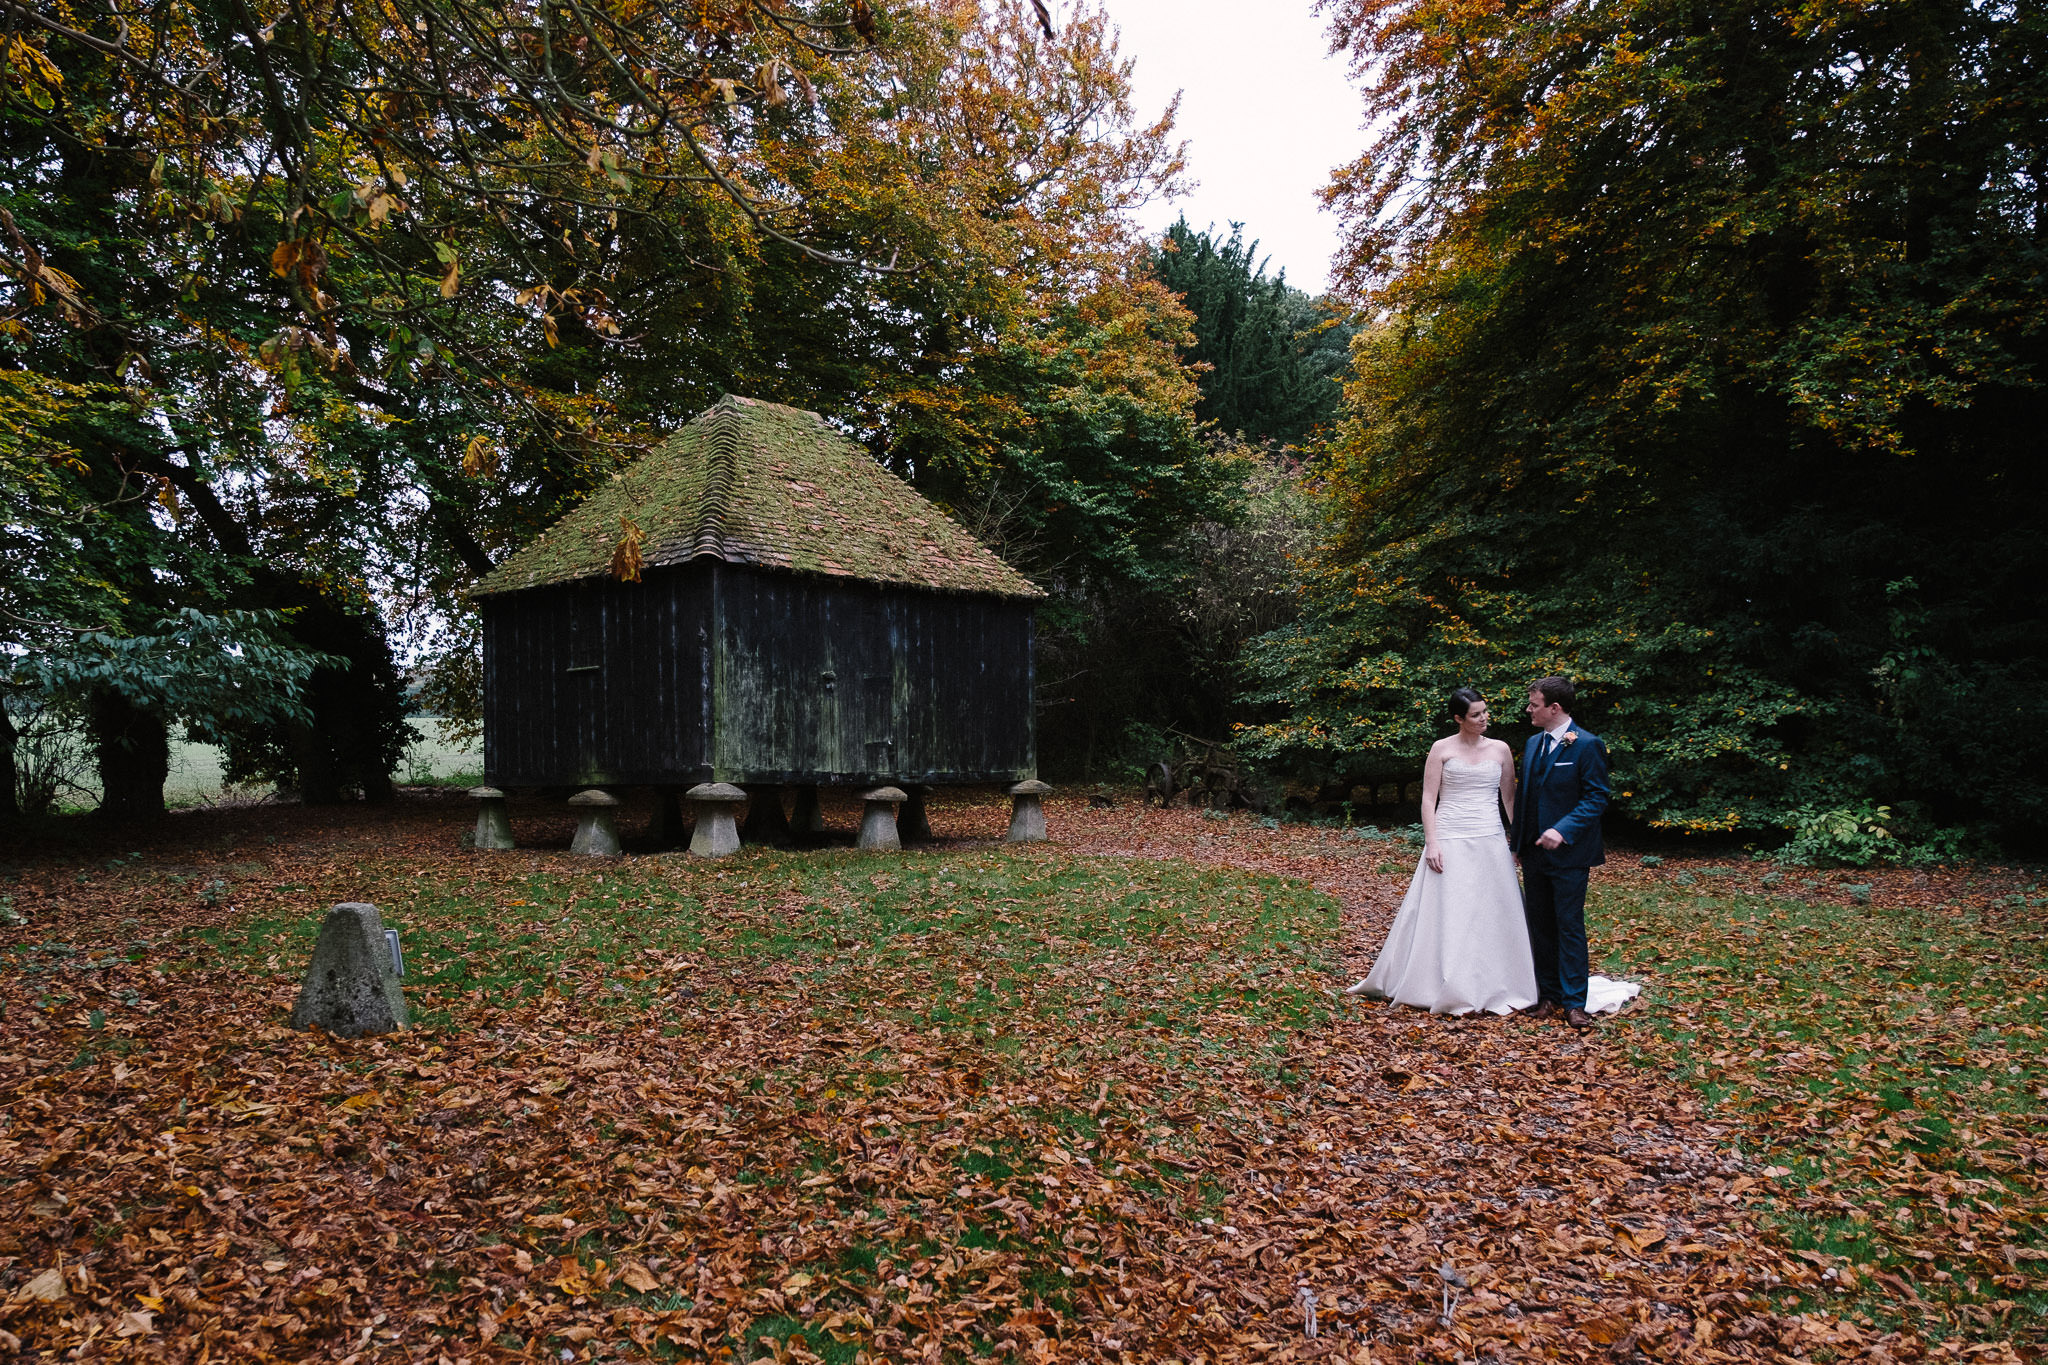 A bride and groom posing for a photo at Lains Barn wedding venue, Oxfordshire